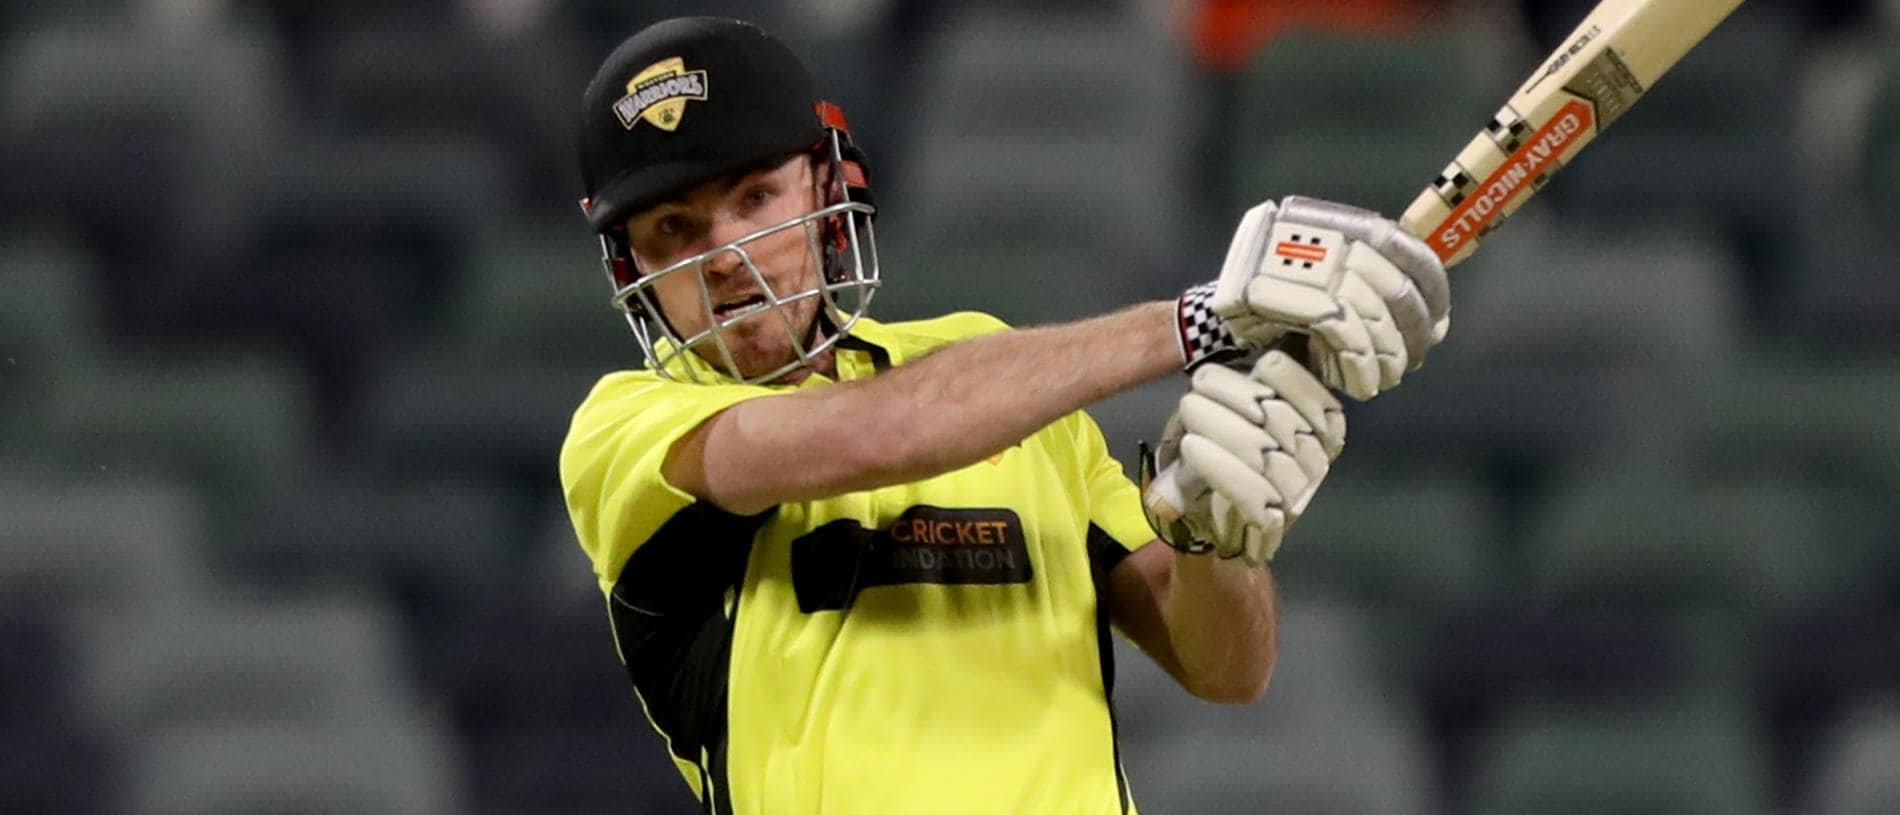 Ashton Turner of Western Australia plays a shot during the JLT One-Day Cup 2018 match between Western Australia and NSW at the WACA in Perth, Tuesday, September 18, 2018. (AAP Image/Richard Wainwright) NO ARCHIVING, EDITORIAL USE ONLY, IMAGES TO BE USED FOR NEWS REPORTING PURPOSES ONLY, NO COMMERCIAL USE WHATSOEVER, NO USE IN BOOKS WITHOUT PRIOR WRITTEN CONSENT FROM AAP